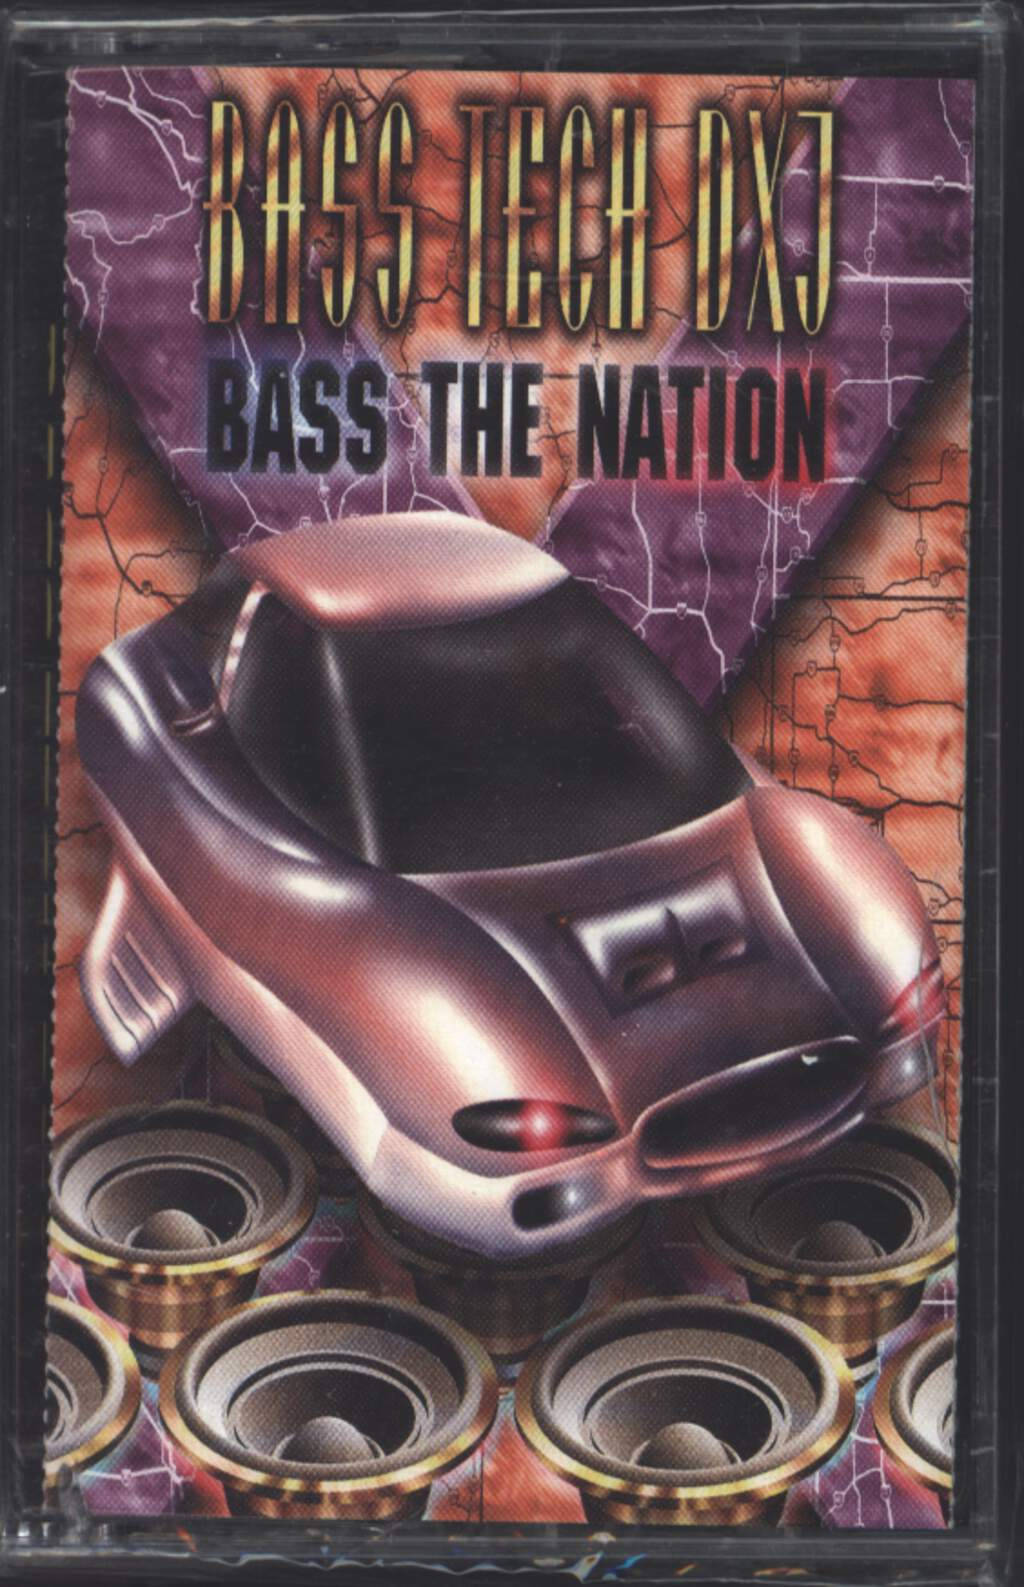 Bass Tech DXJ: Bass The Nation, Tape